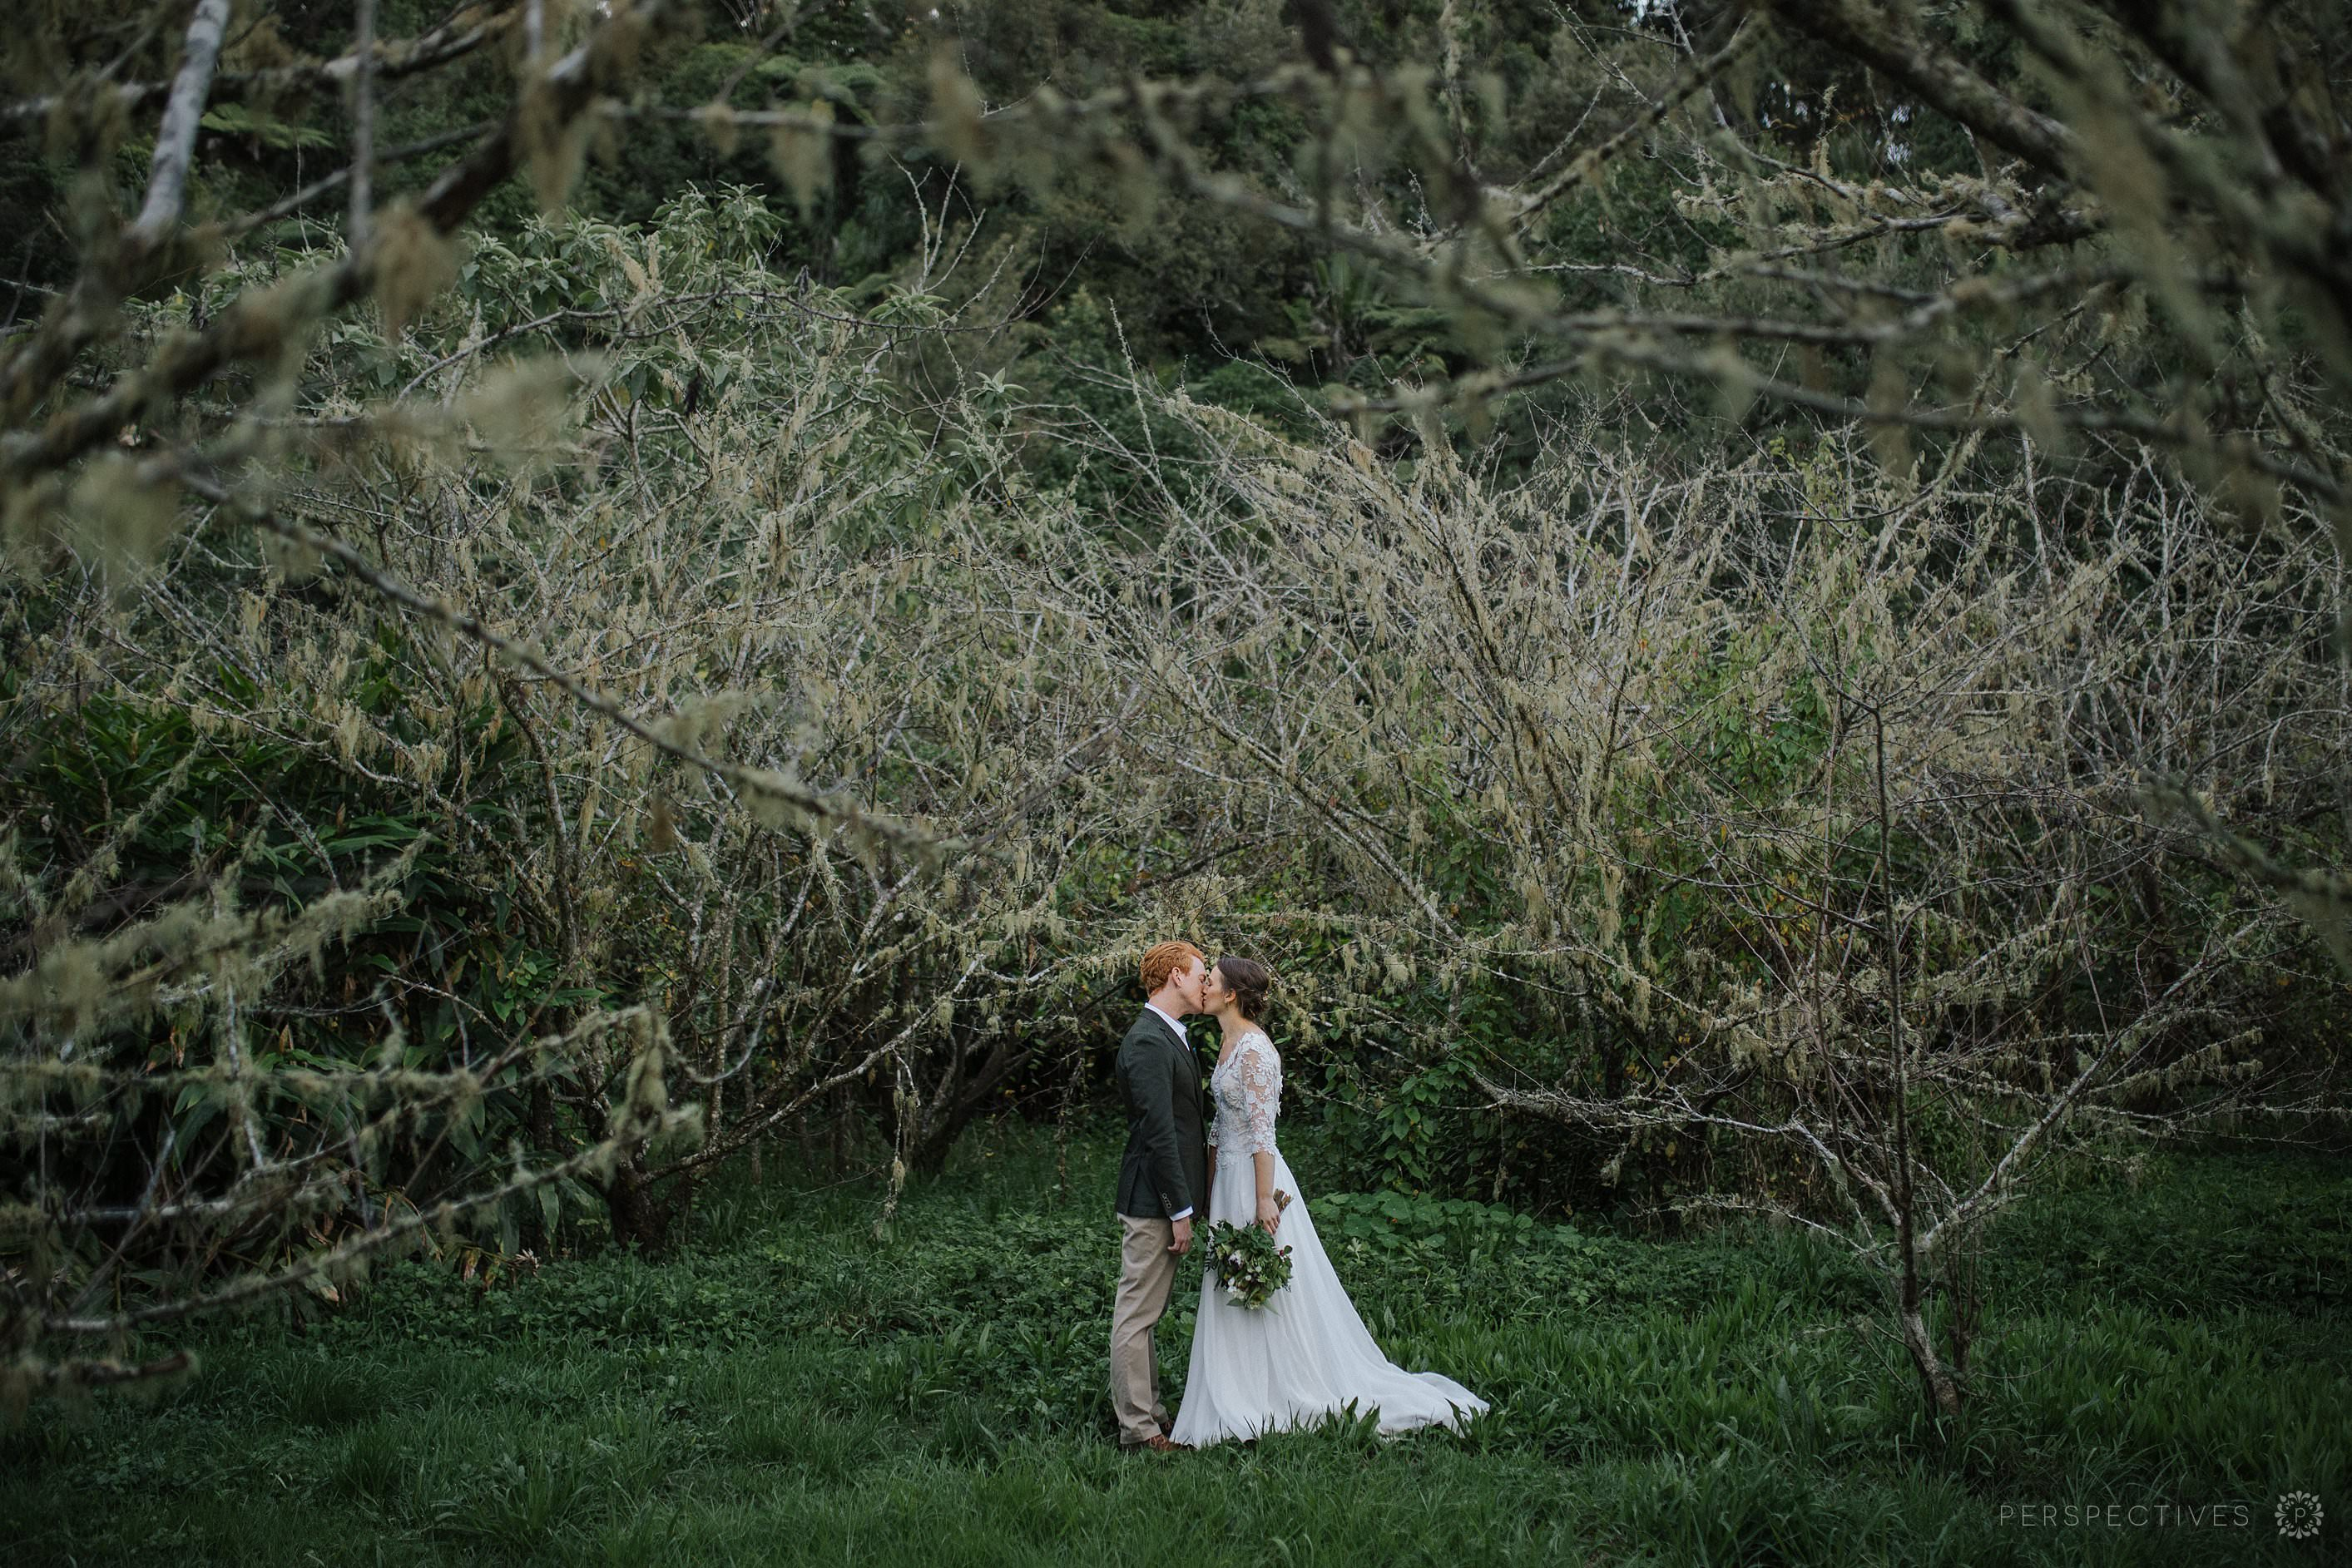 Rustic orchard wedding photo location Auckland